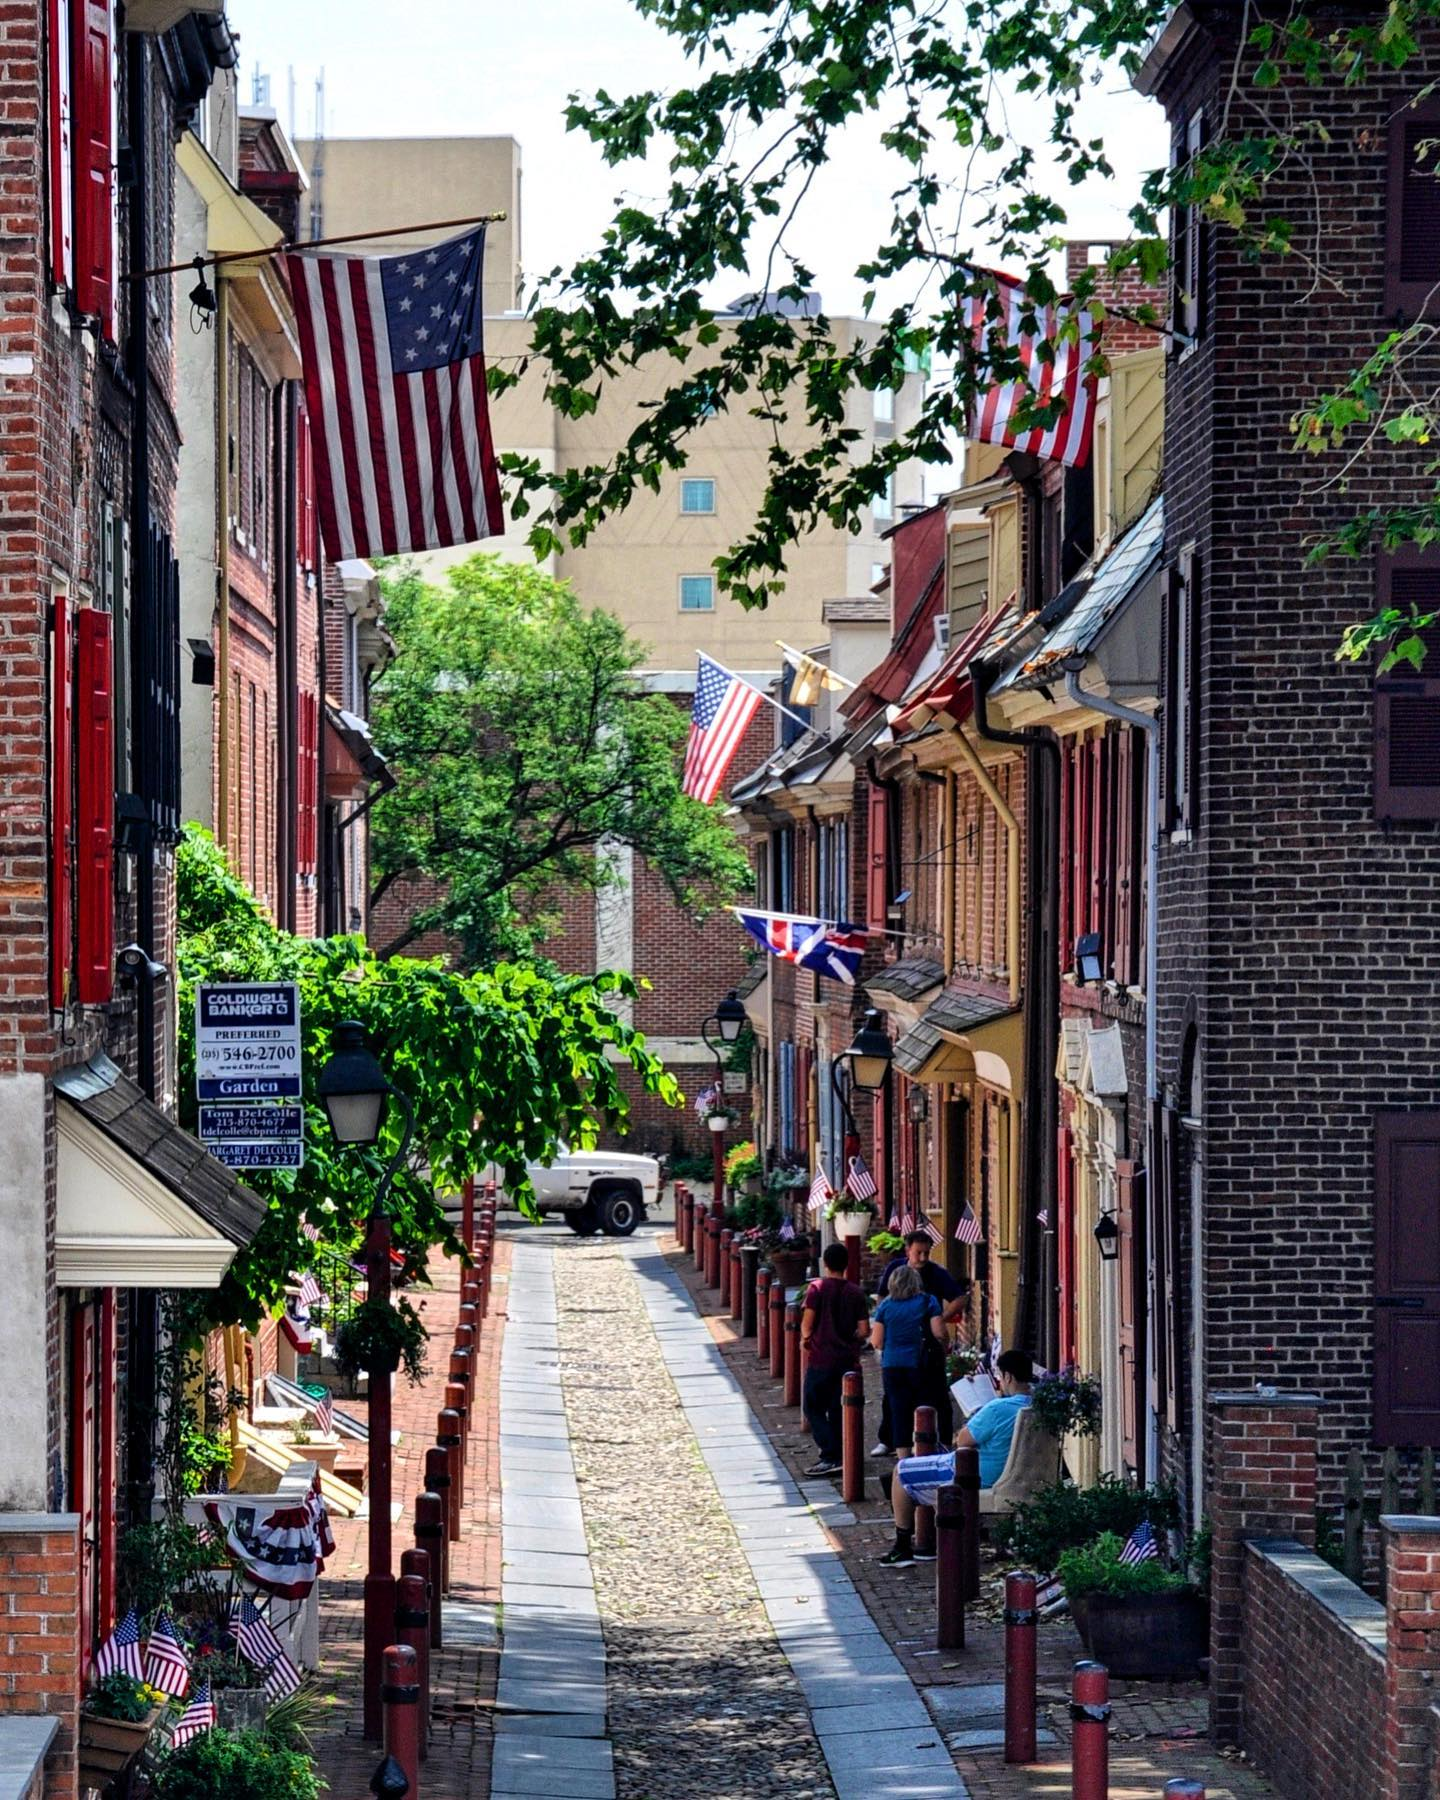 Elfreth's Alley, Philadelphia, Pennsylvania   🇺🇸Wednesday@travelroadsusa ***Backyard/Alley***  Philadelphia's Elfreth's Alley is known as America's oldest residential street.  #usatravel #usatravels #usatrip #usa #america #elfrethalley #alley #philadelphia #historicalplace #philly #visitphilly #visitphiladelphia #onlyinphilly #explorephilly #streetpic #travelpics #travel_captures #oldcityphilly #phillyprimeshots #go_philadelphia #instaphilly #pennsylvania #pennsylvaniaisbeautiful #travelroadsusa #traveladdict #travelholic #traveltheusa #travelgrams #exploretheworld #exploretheusa